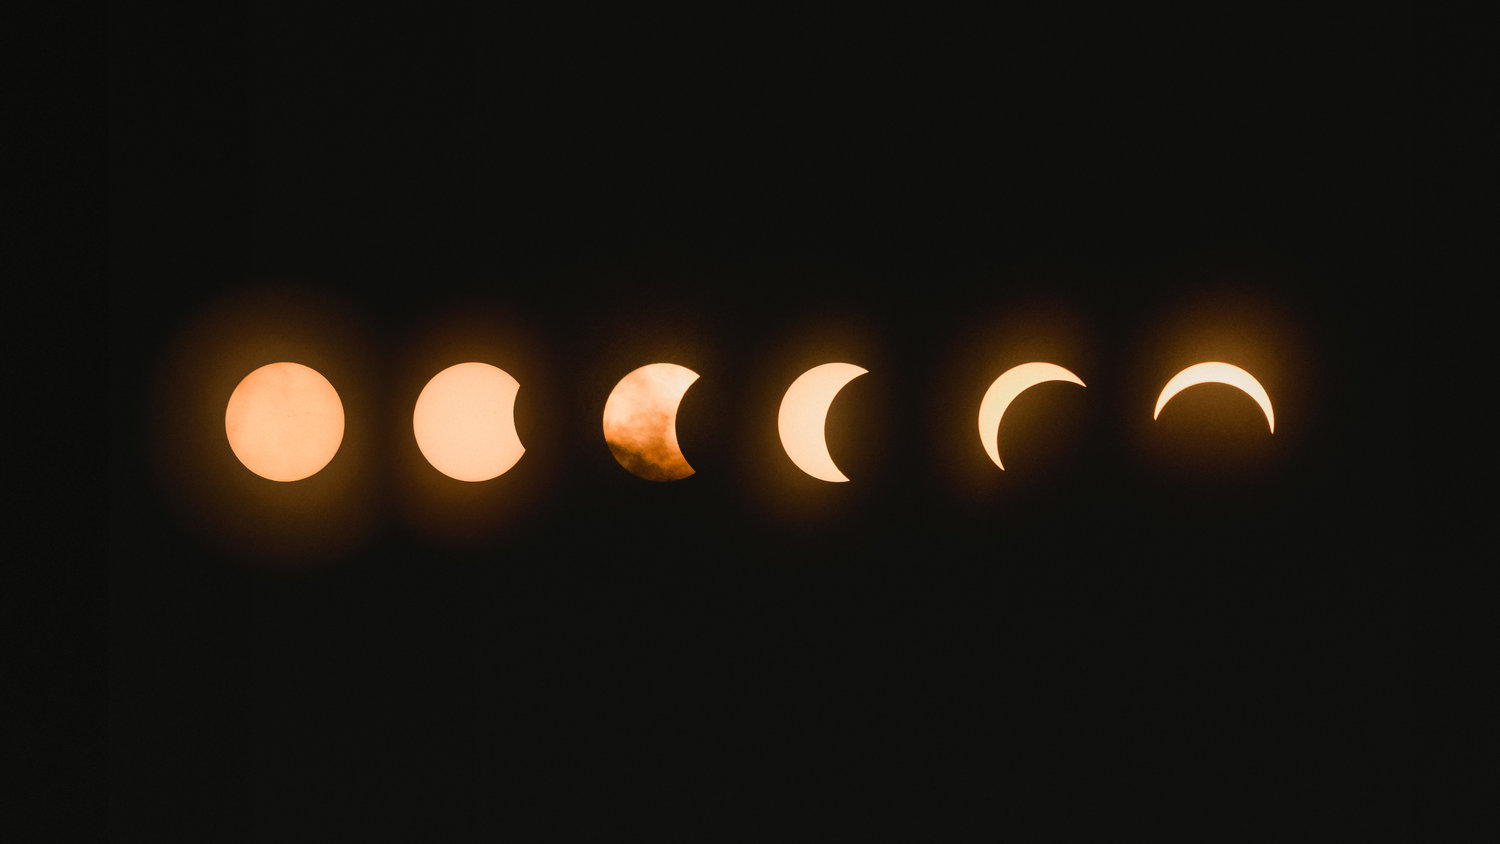 eclipses used to be seen as omens of death